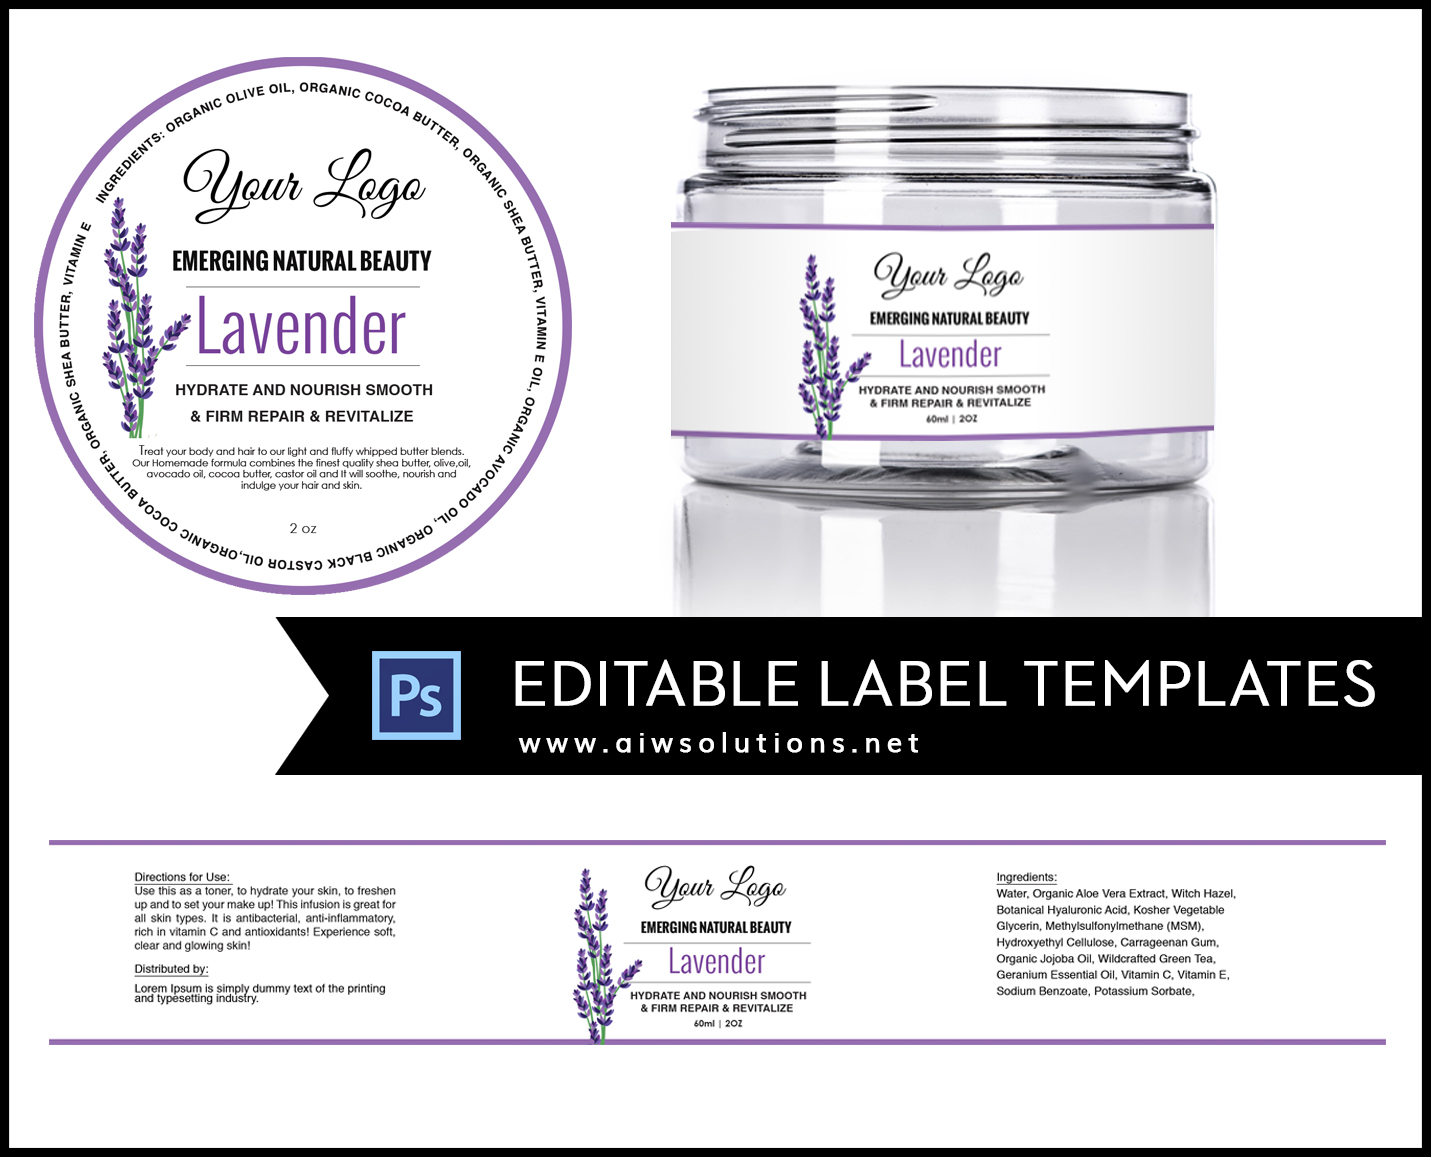 Label template id11 aiwsolutions for Cosmetic label templates